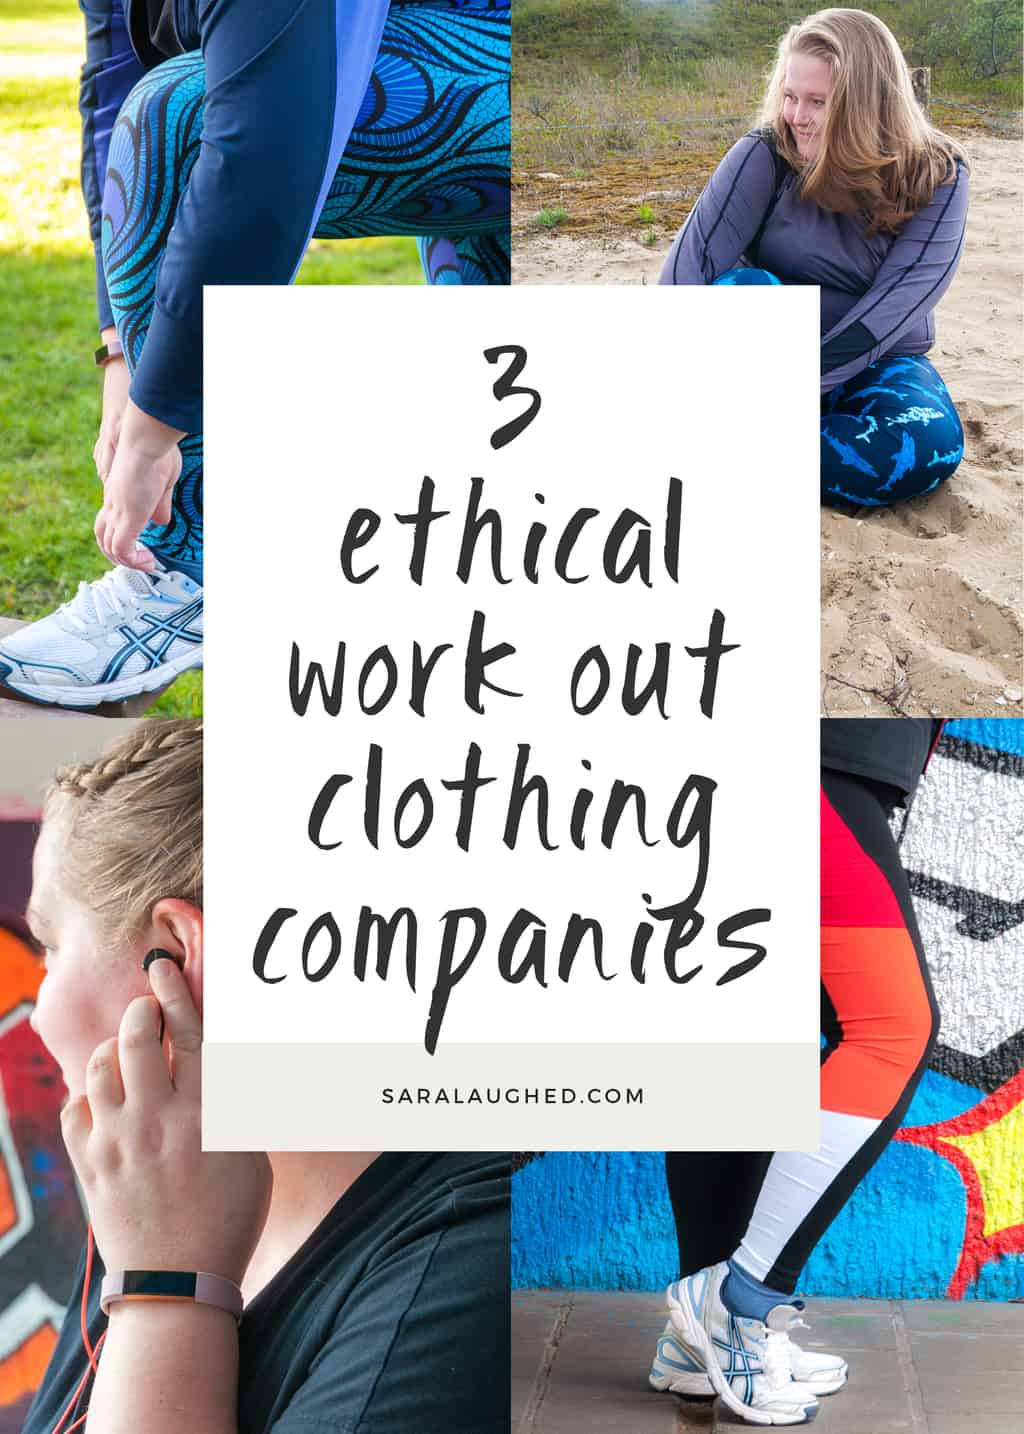 Body positive, good for the environment, AND super cute? Sign me up for these 3 awesome ethical activewear companies!